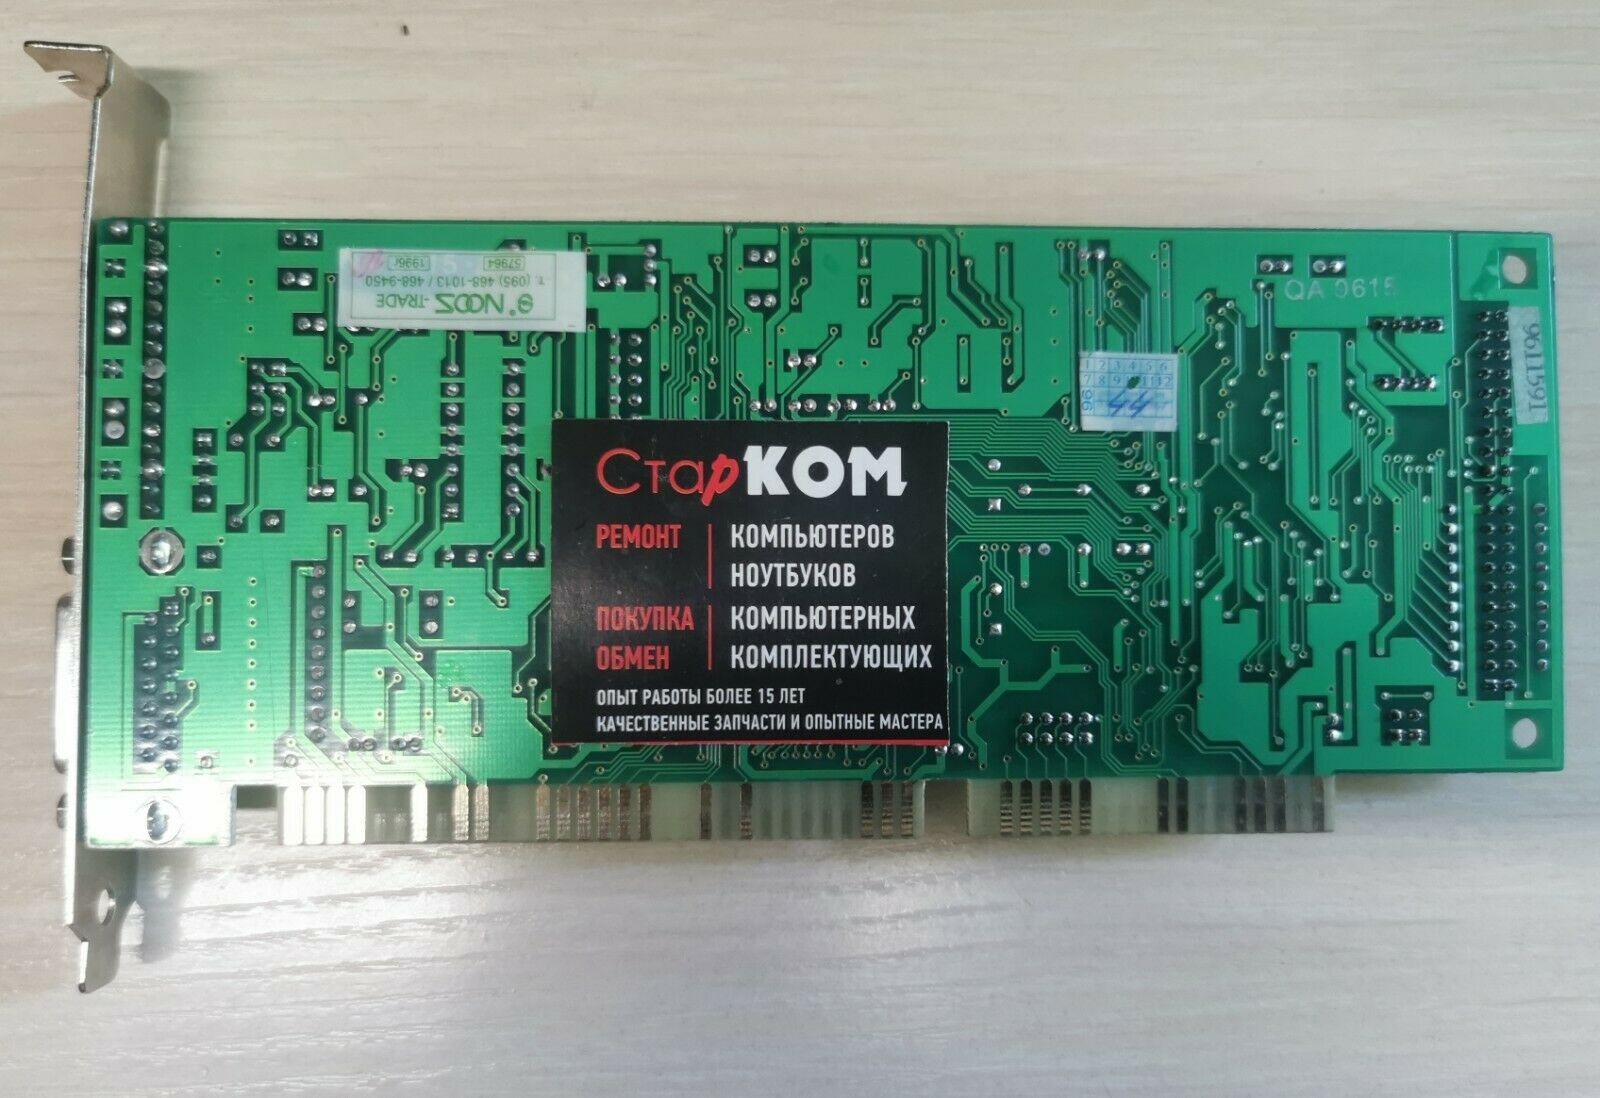 Cd Quality Audio for Buisness,internet and Multimedia Solutions Model Sb2980 Creative Sound Blaster 16 Value Pnp